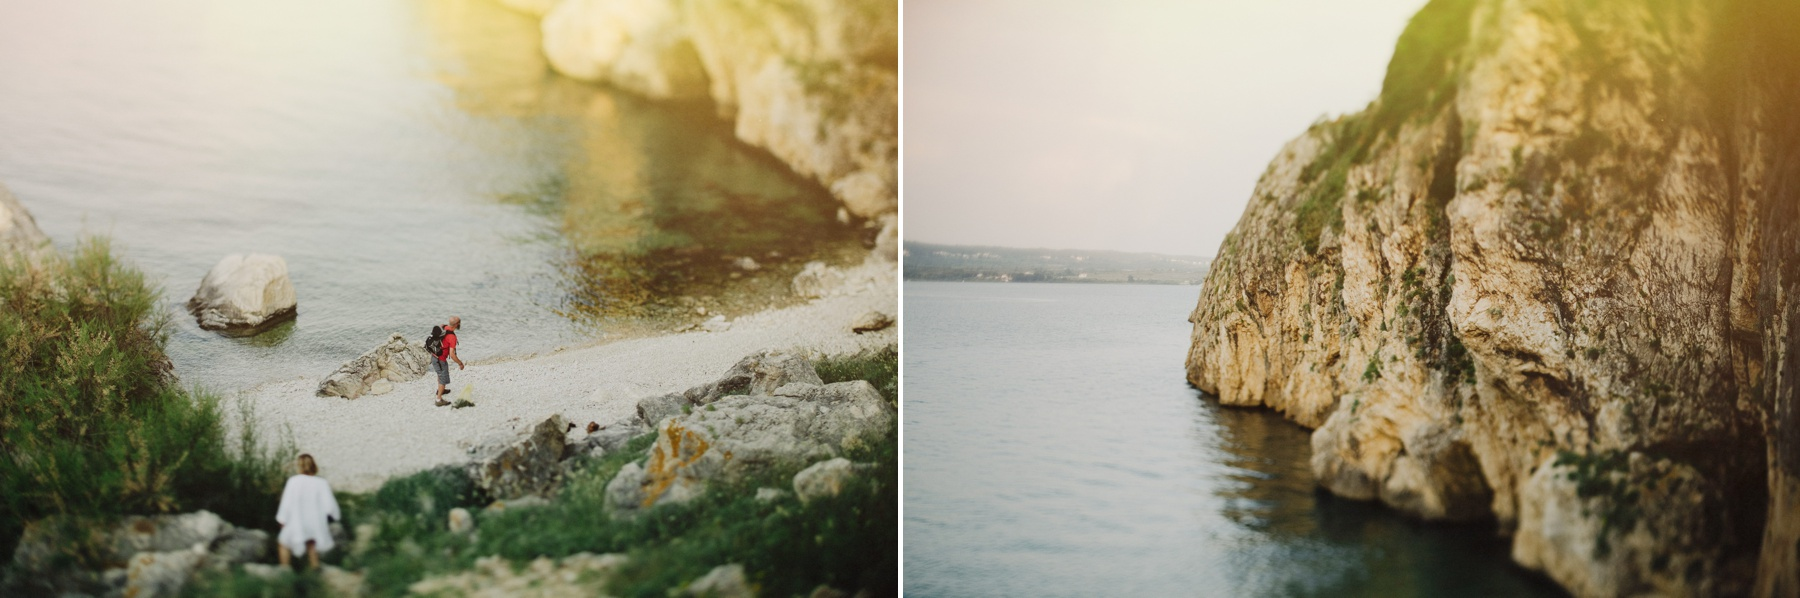 Croatia adventure wedding photographer